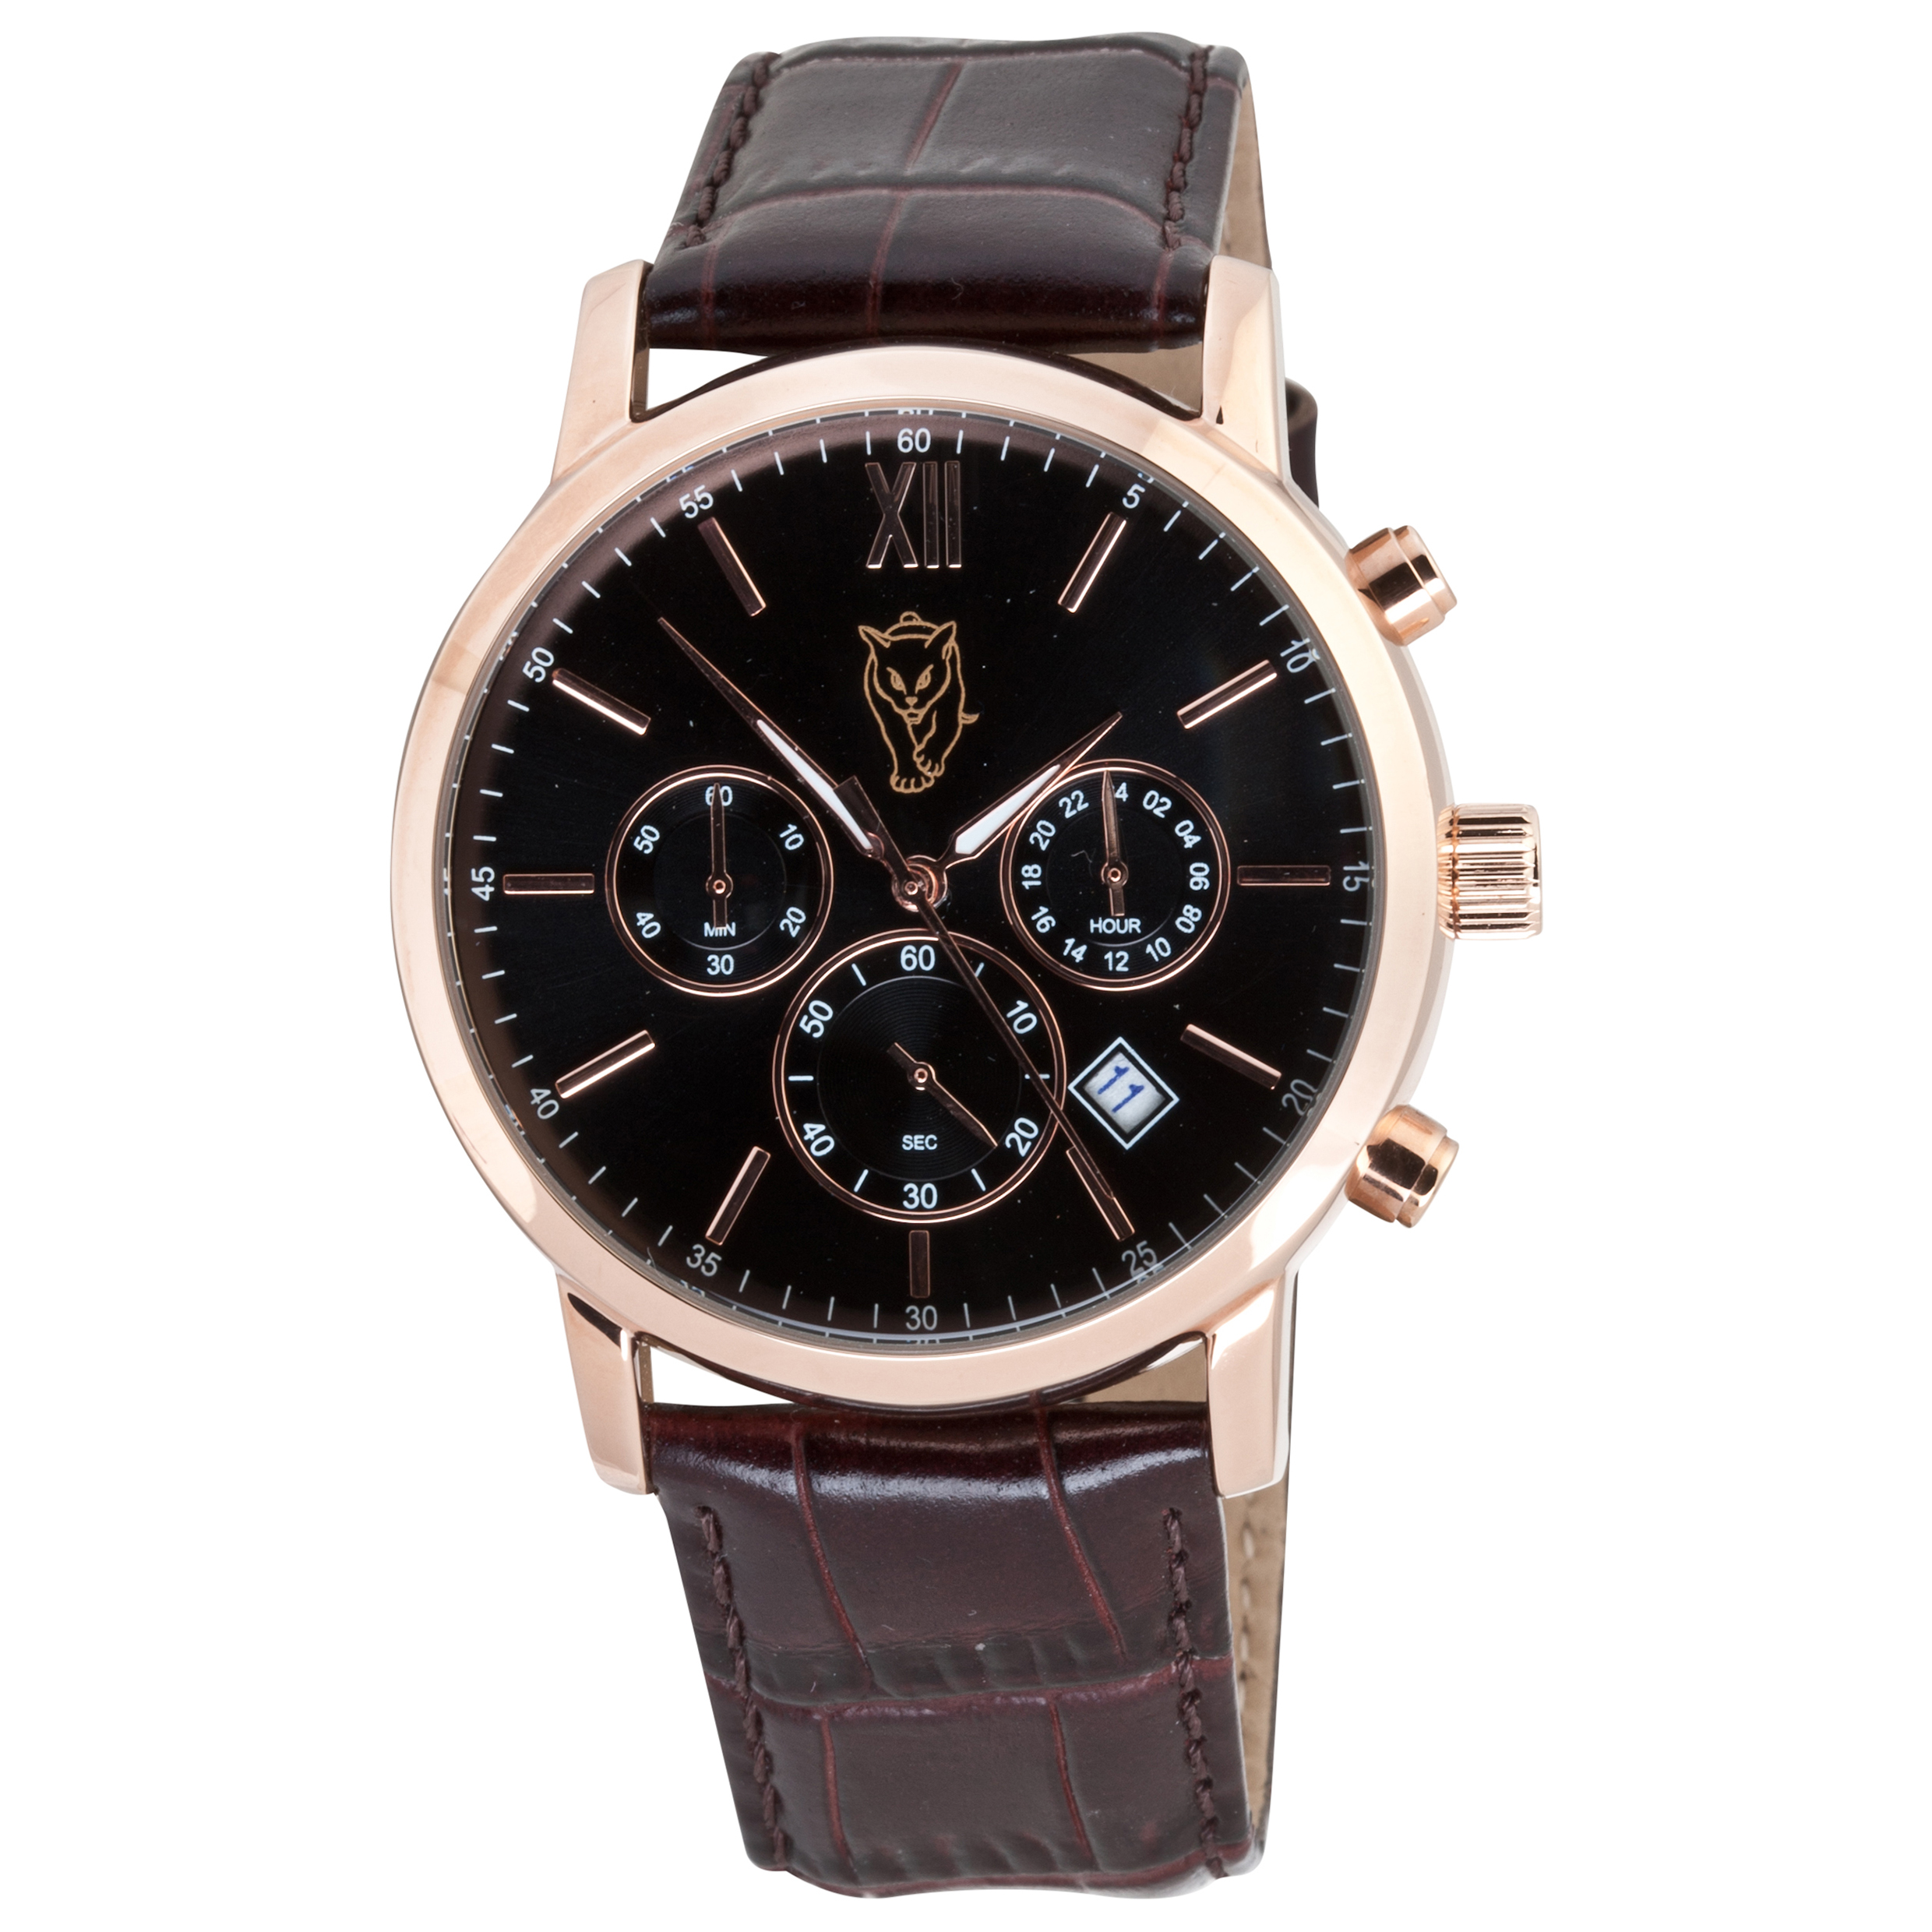 Sunderland Limited Edtion Mens Watch